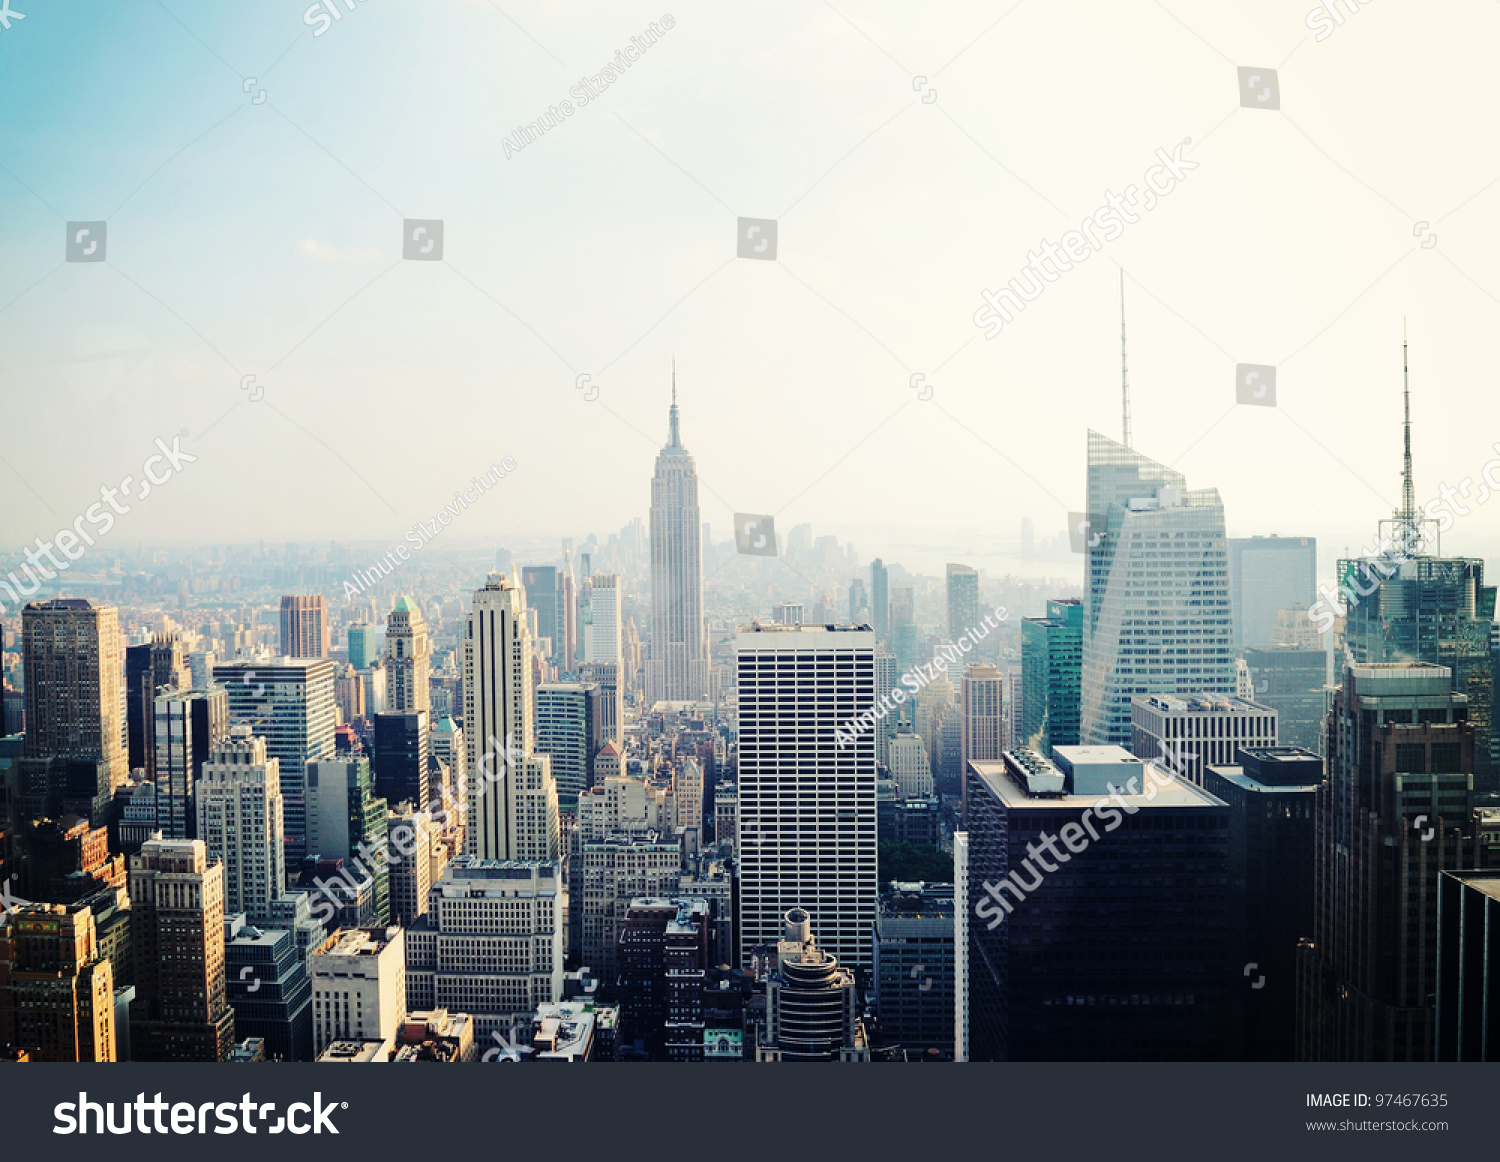 new york city manhattan skyline aerial stock photo 97467635 shutterstock. Black Bedroom Furniture Sets. Home Design Ideas